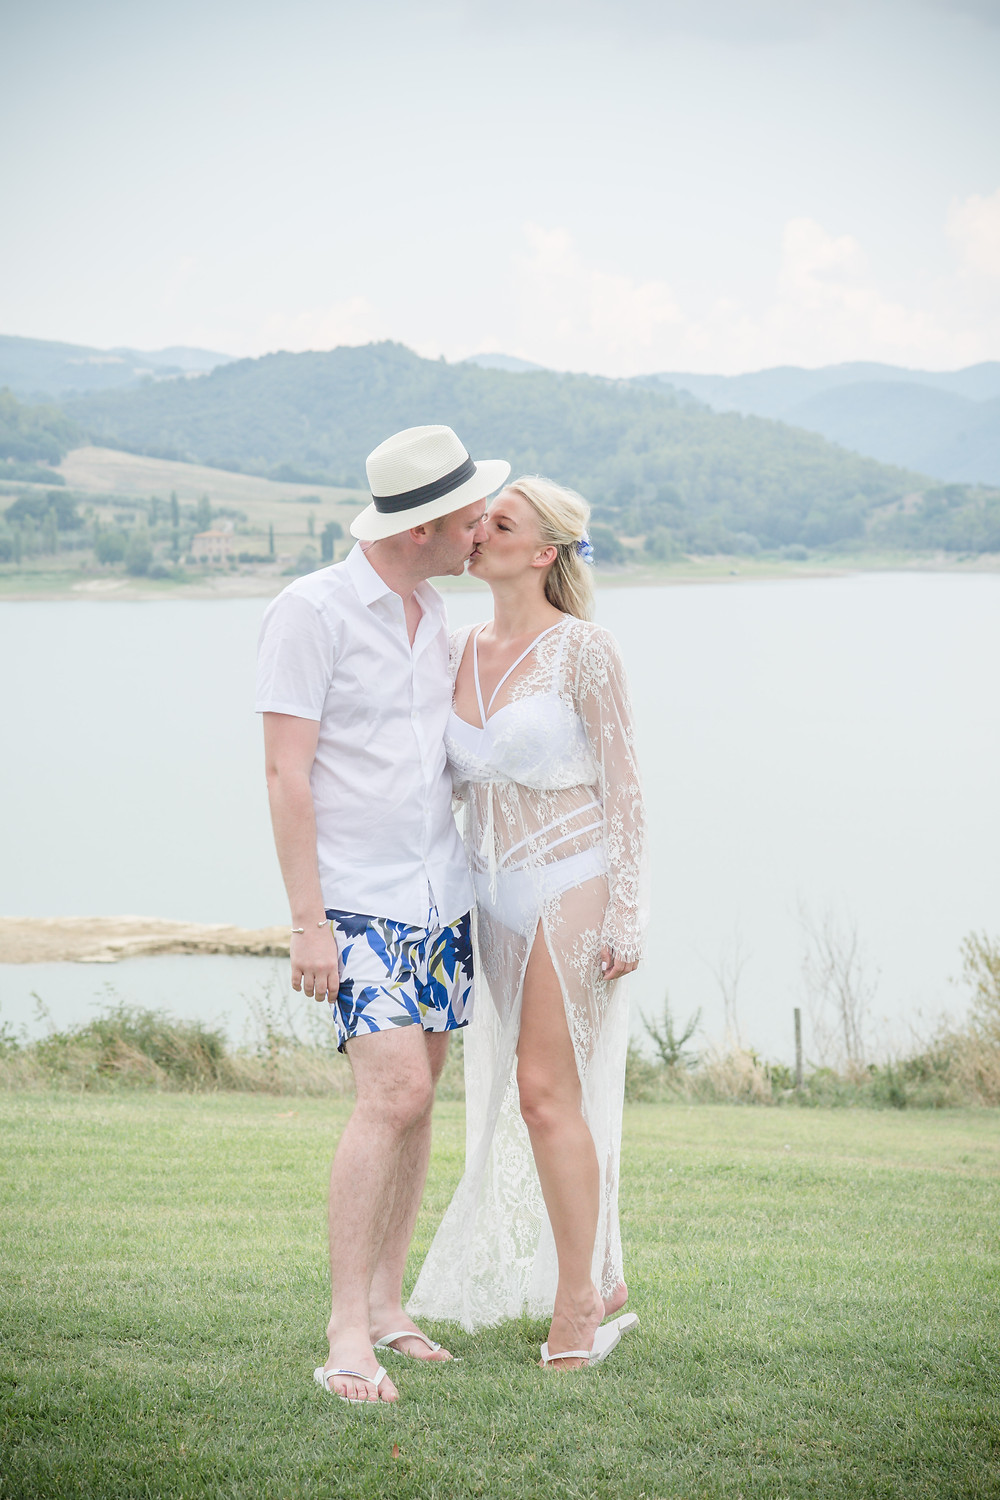 Bride and groom kissing in swimsuits in front of a lake and rolling mountains